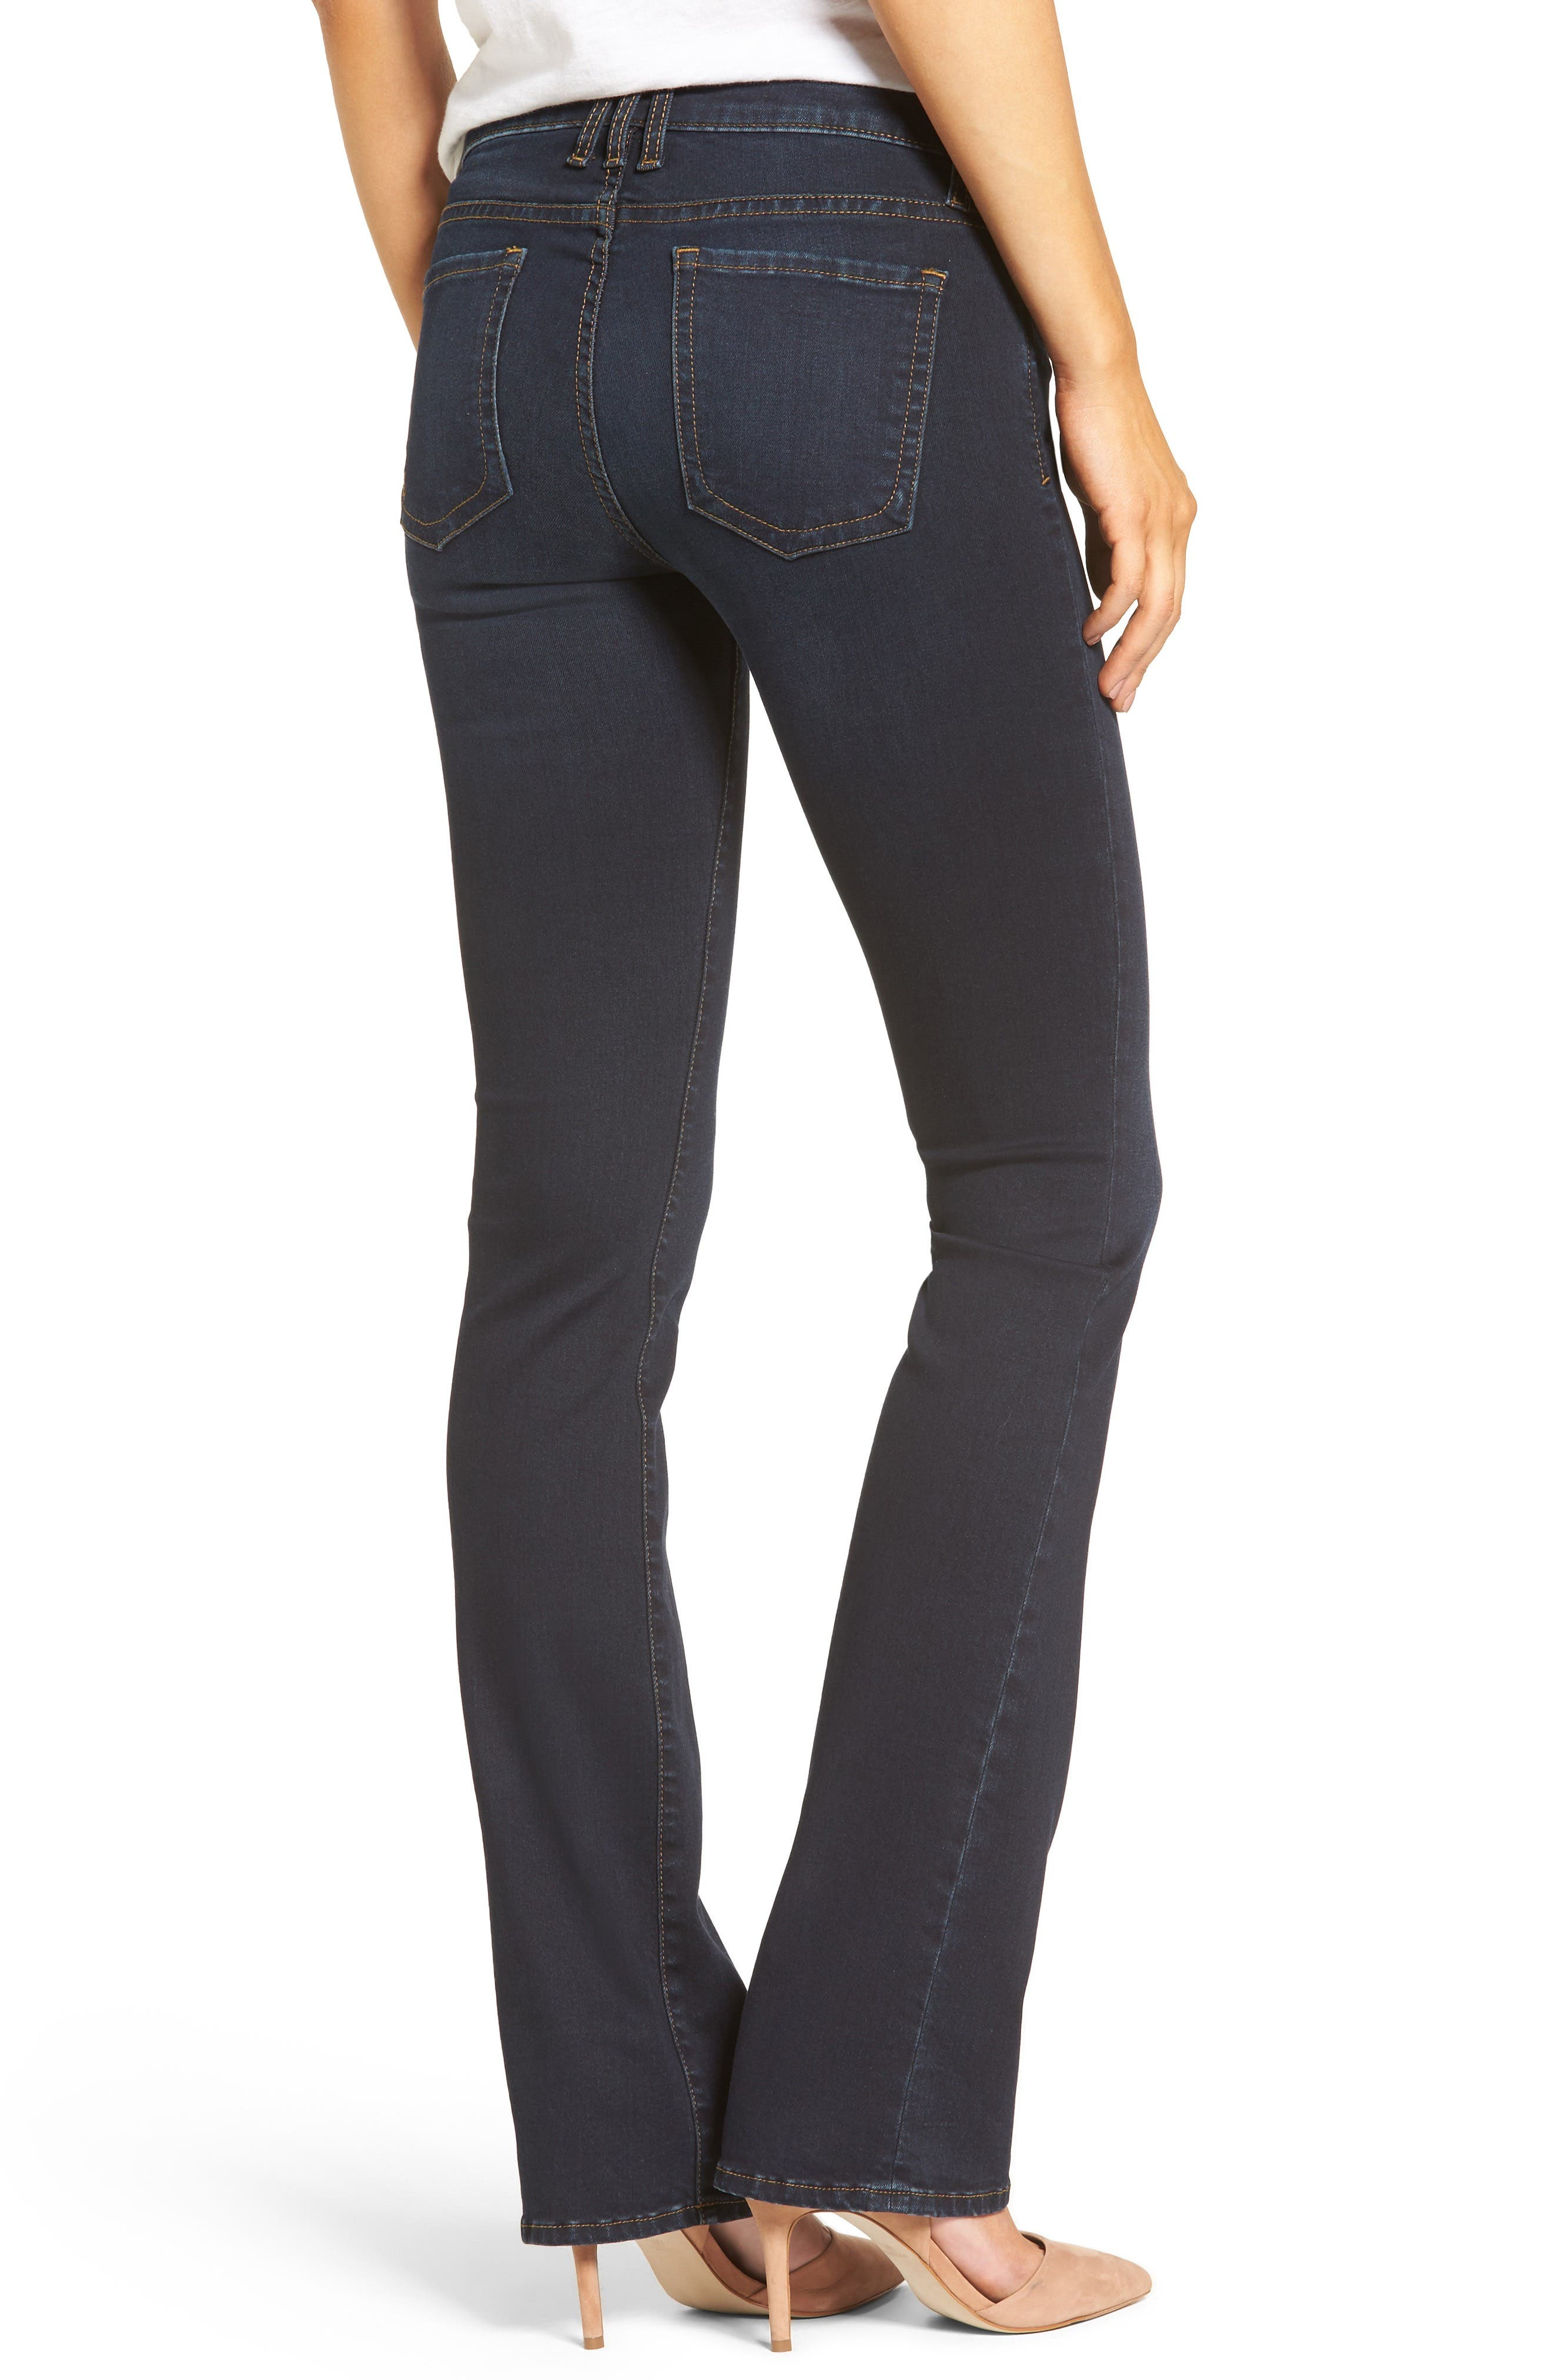 Natalie Stretch Bootleg Jeans,                             Alternate thumbnail 2, color,                             475